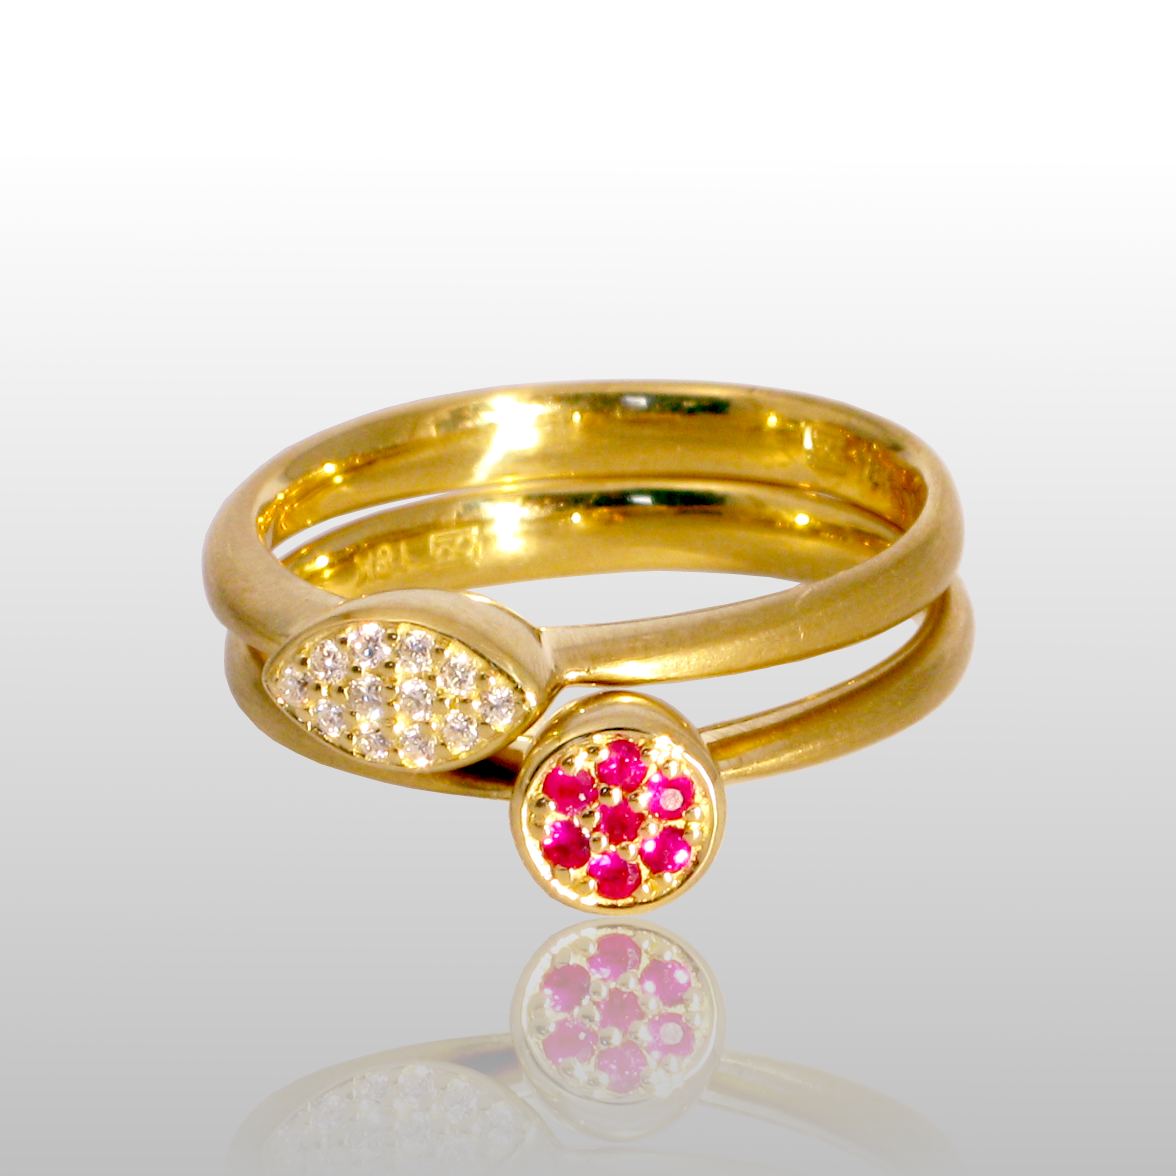 Stackable designer rings 'Stax' in 18k gold with diamond and ruby pavé by Pratima Design Fine Art Jewelry